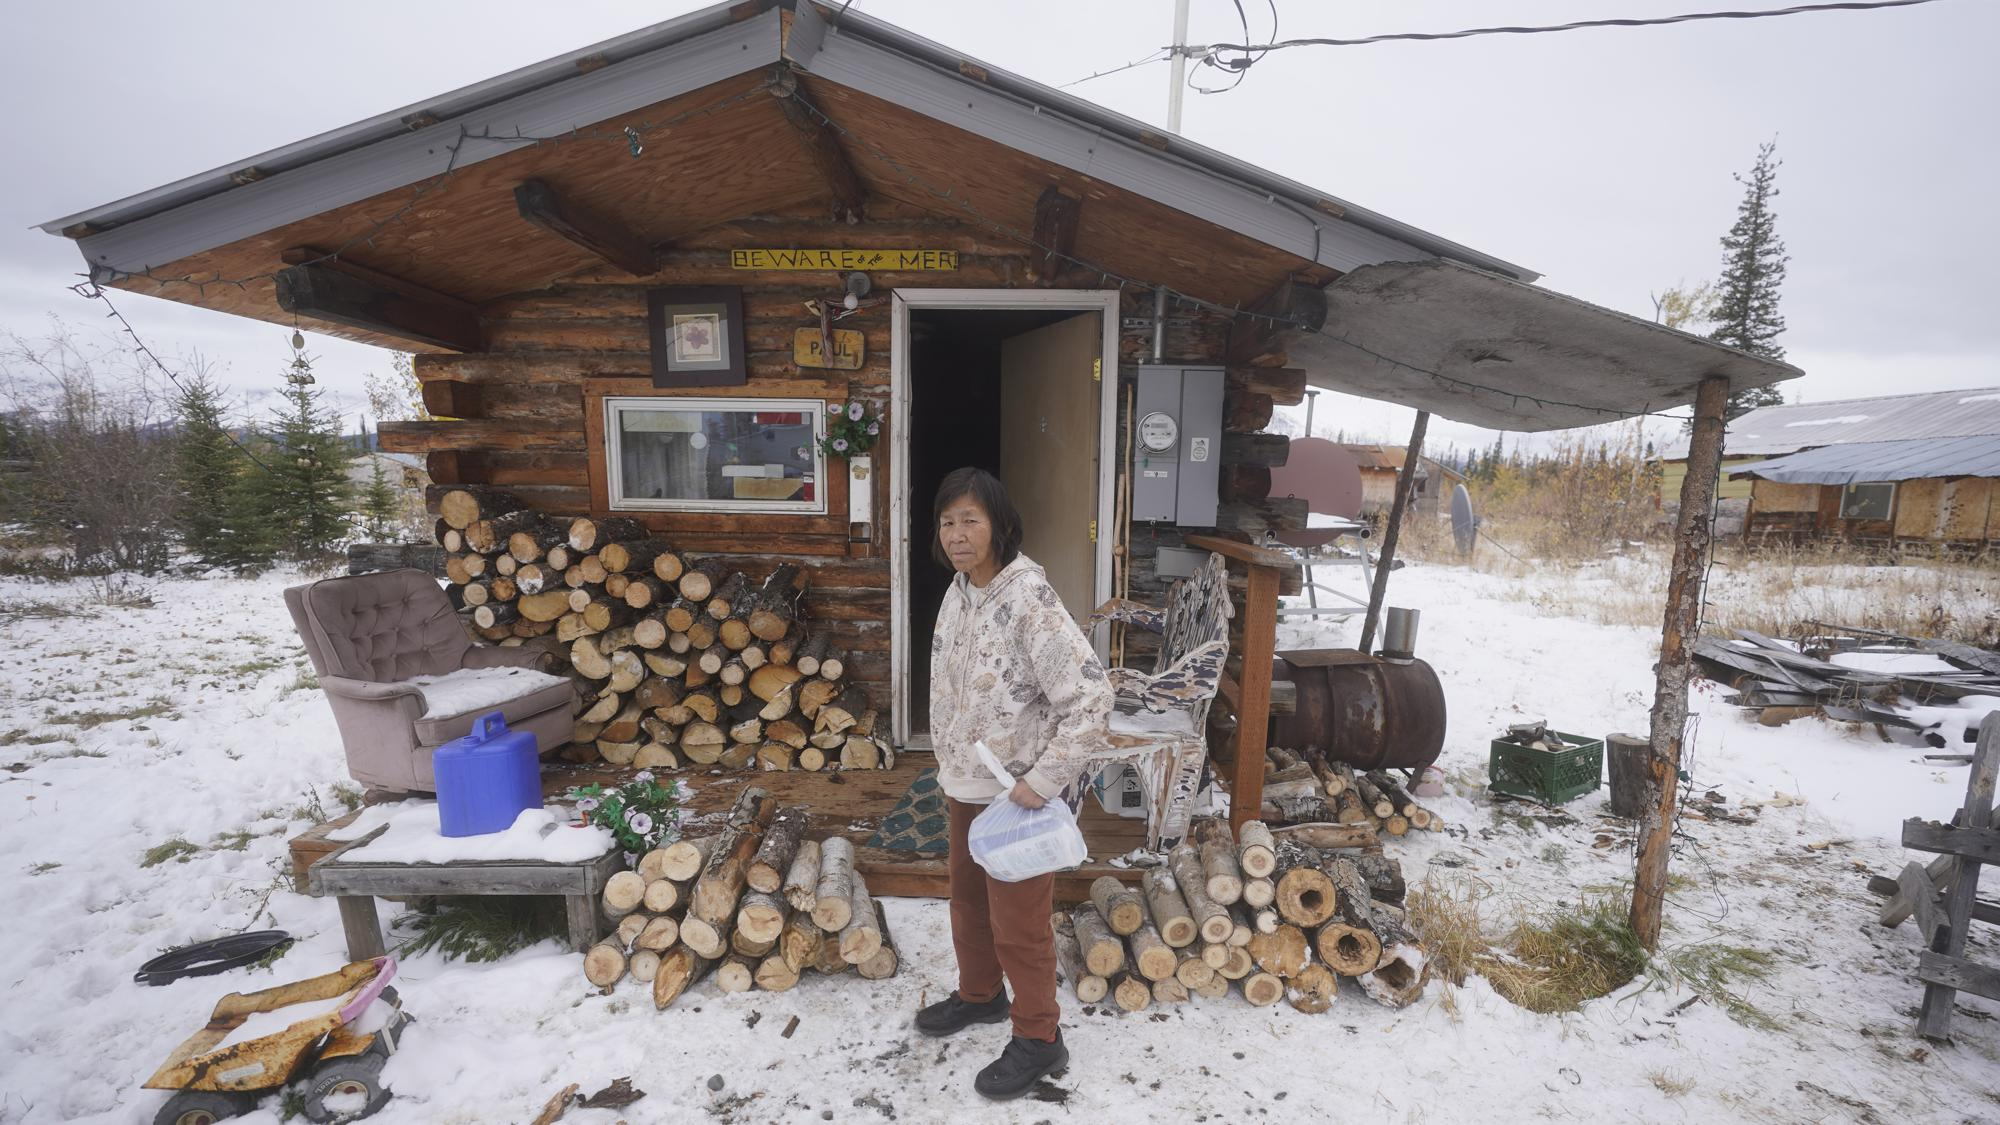 Marilyn Paul stands in front of her home Thursday, Sept. 23, 2021, in Tanacross, Alaska. Alaska is experiencing one of the sharpest rises in COVID-19 cases in the country, coupled with a limited statewide healthcare system that is almost entirely reliant on Anchorage hospitals. (AP Photo/Rick Bowmer)